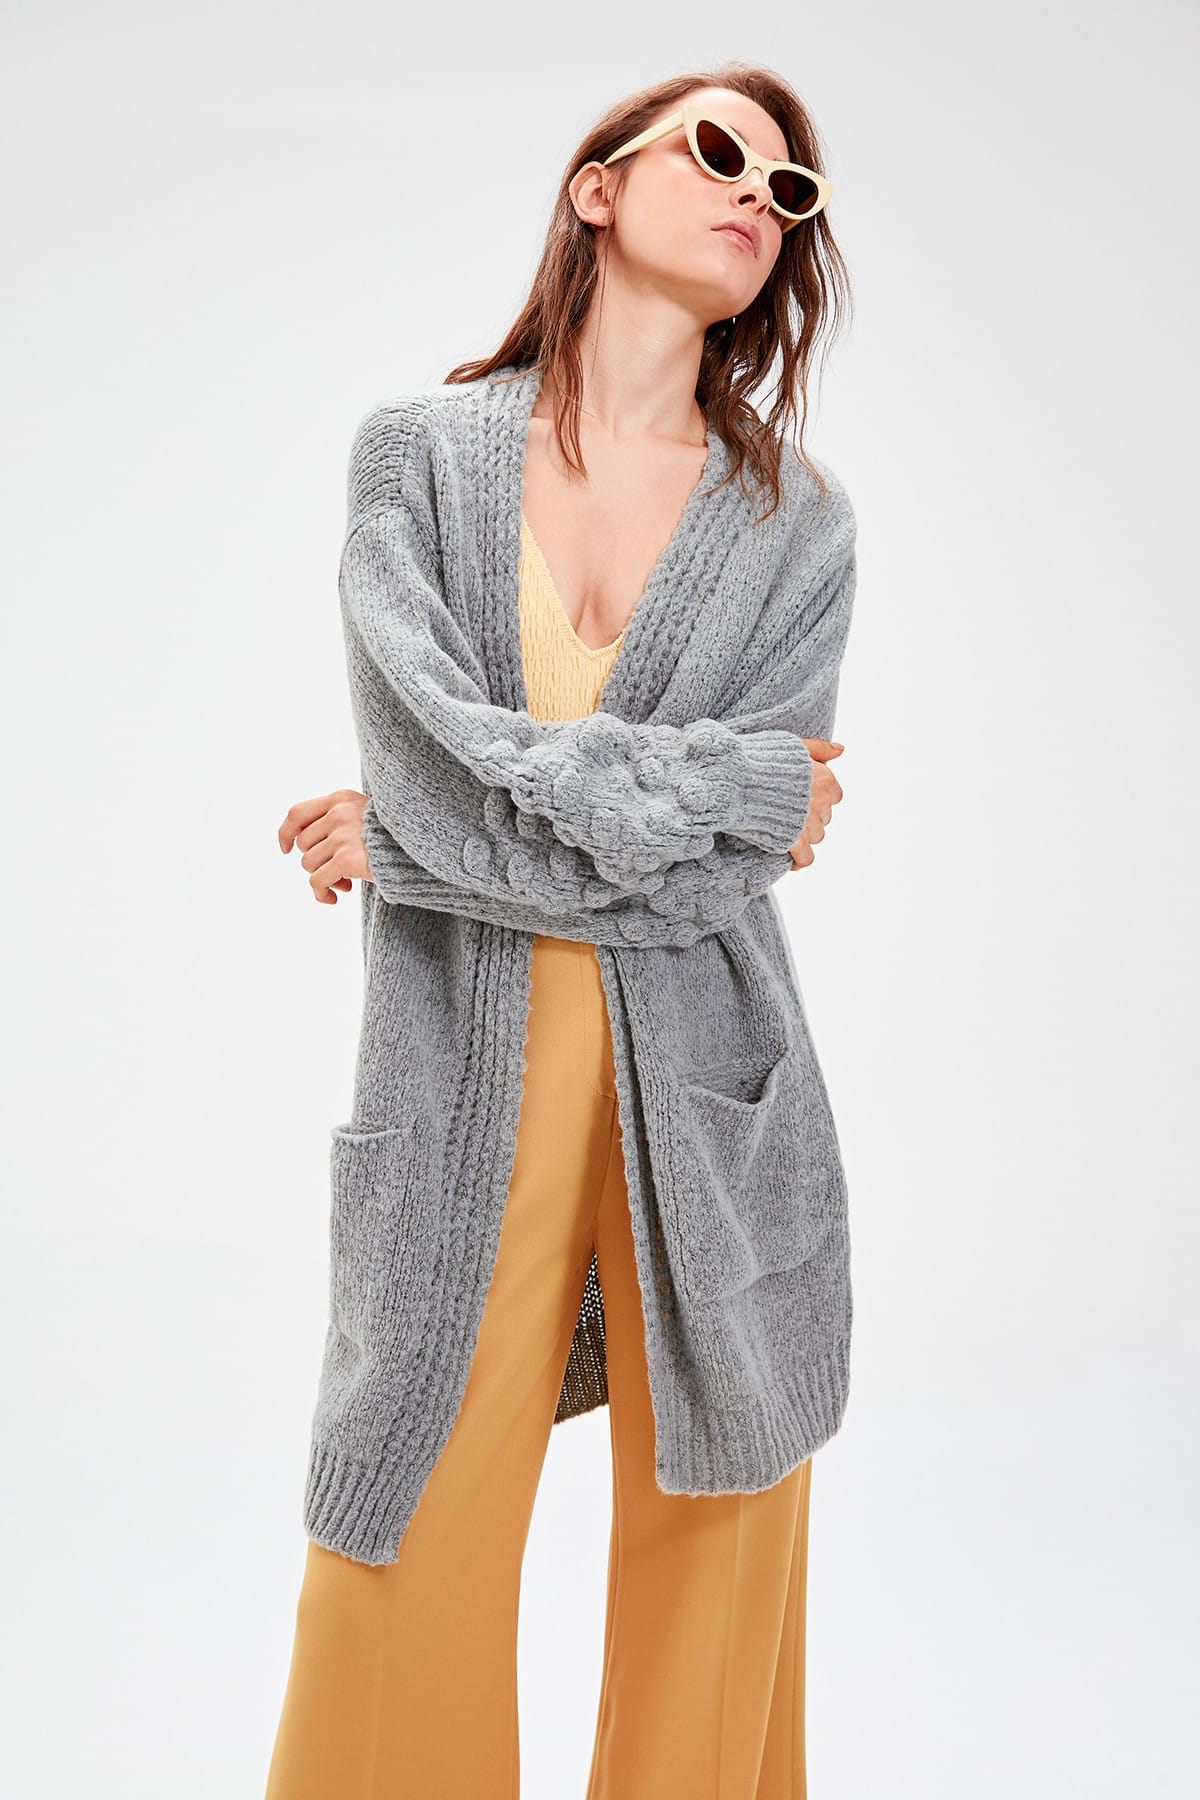 Trendyol Grey Sleeve Detailed Knitwear Cardigan